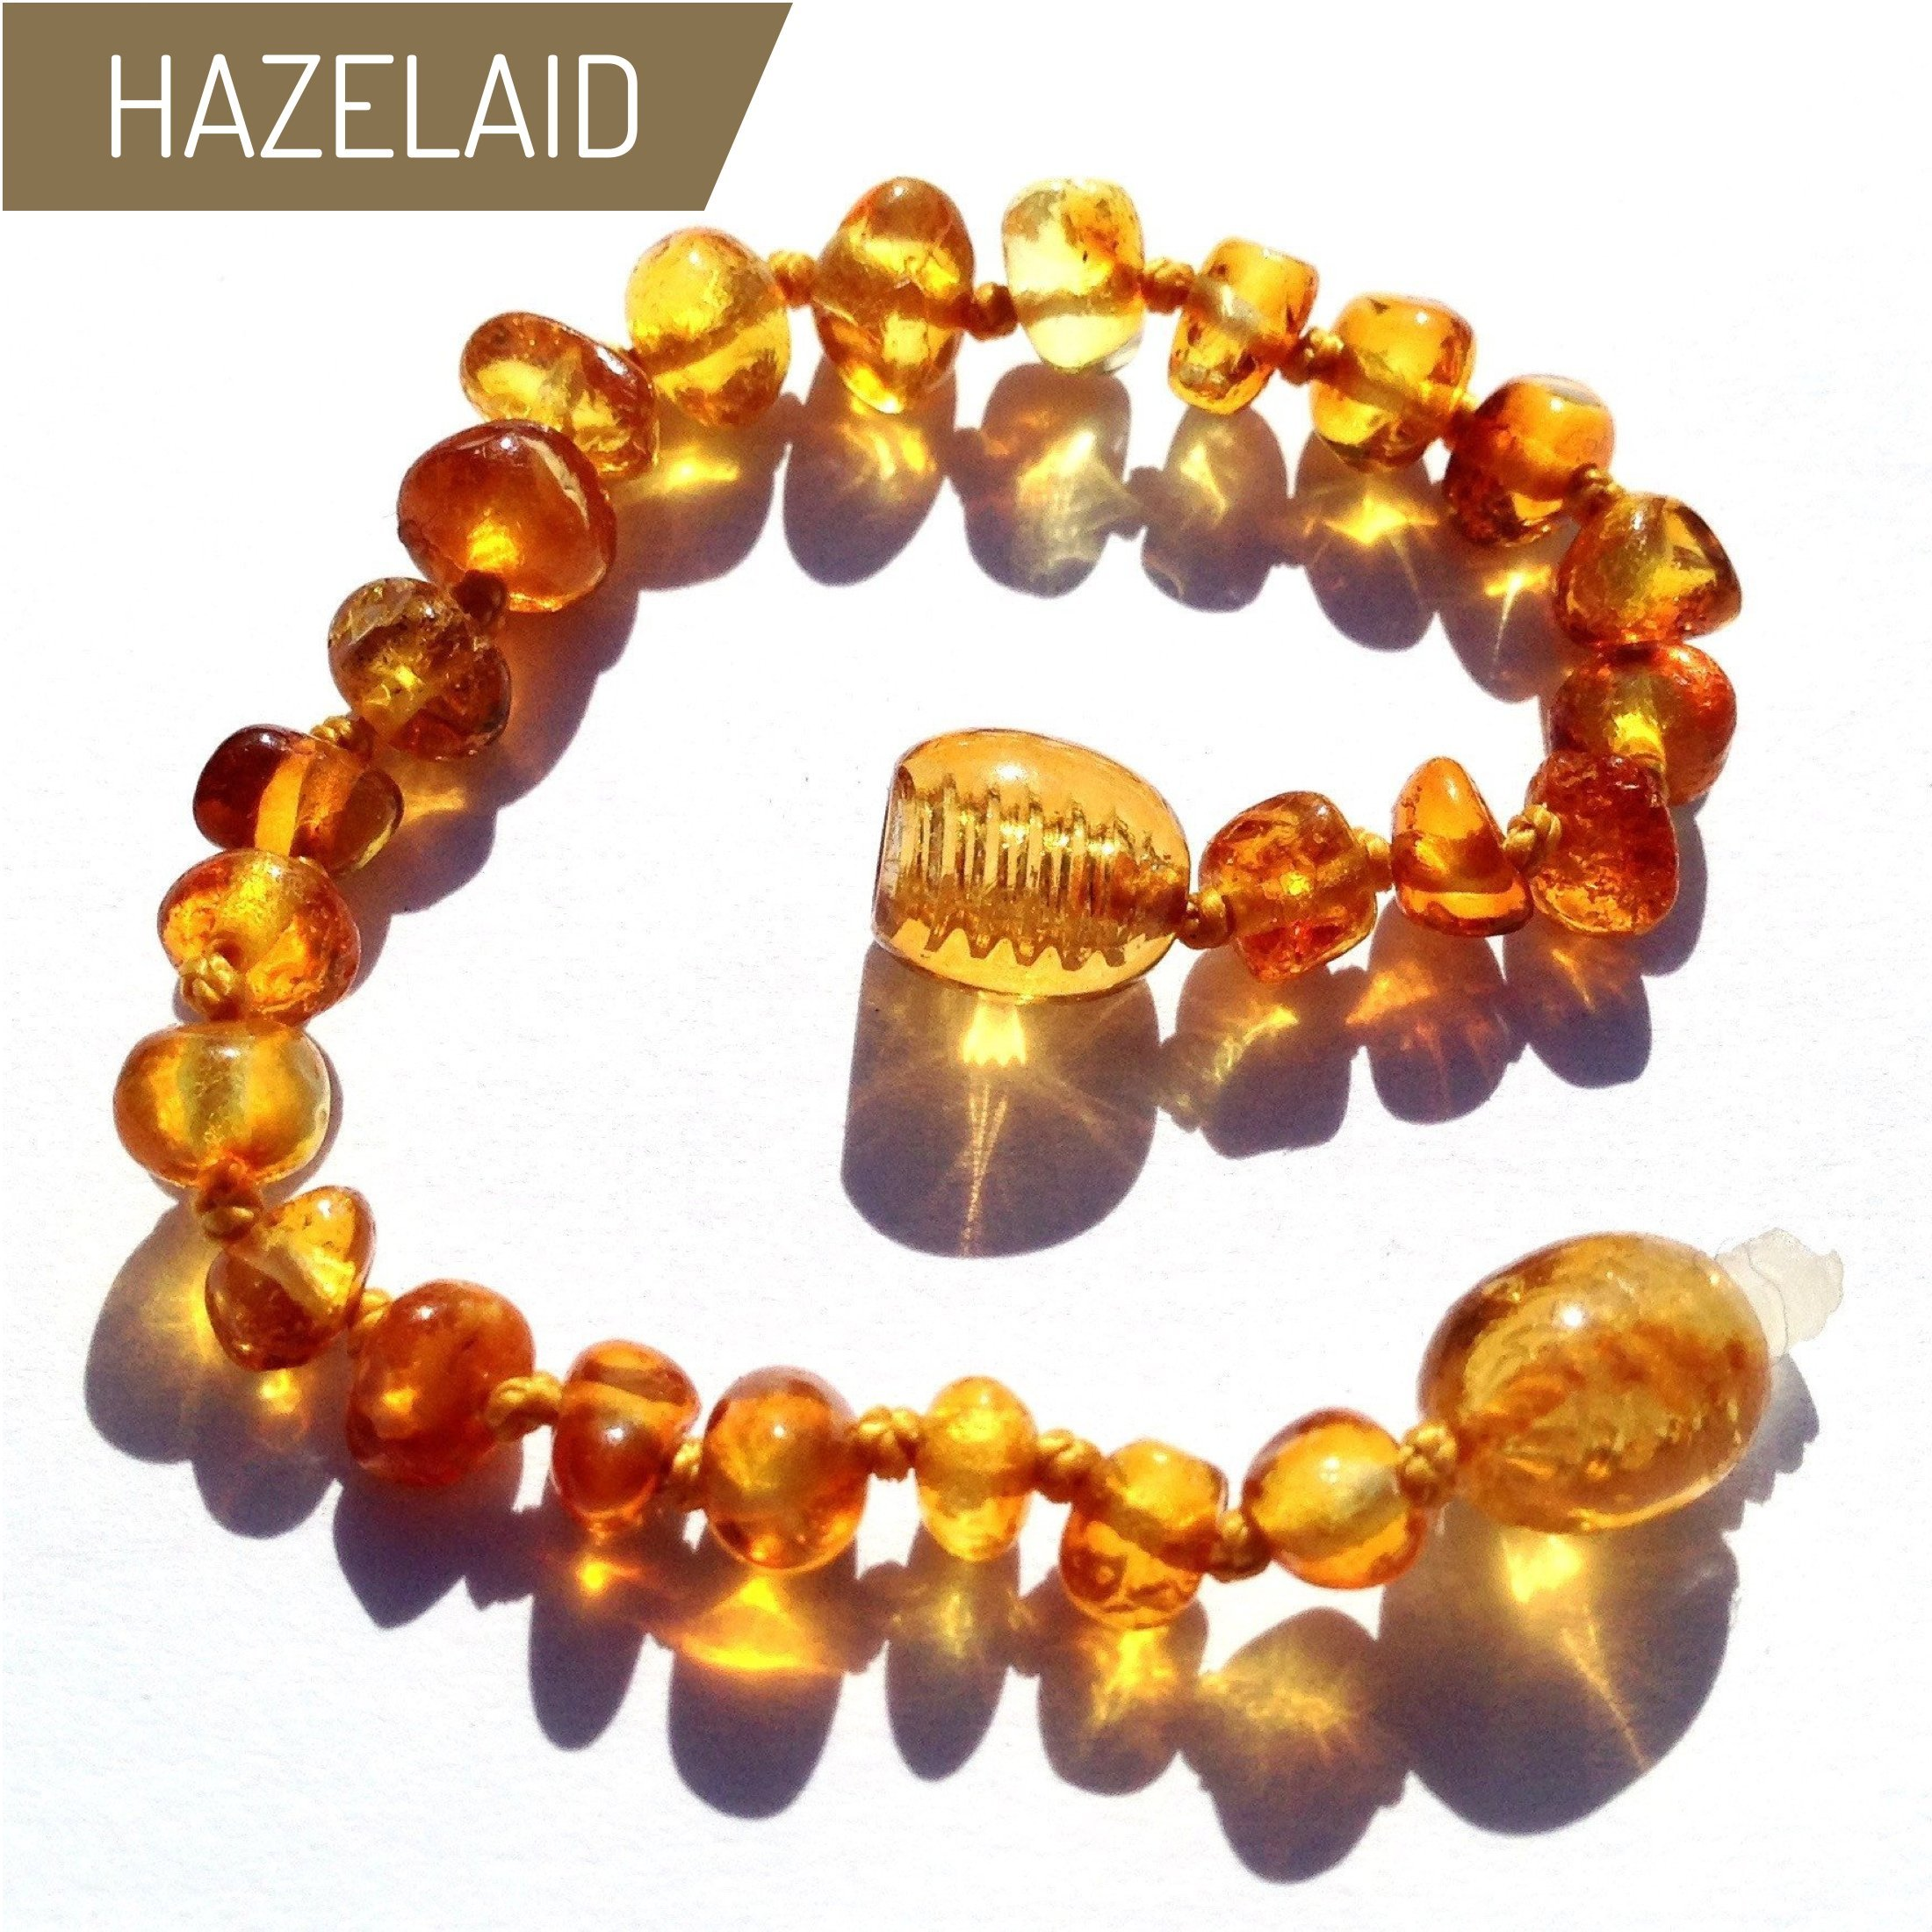 Hazelaid (TM) 5.5'' Baltic Amber Honey Bracelet